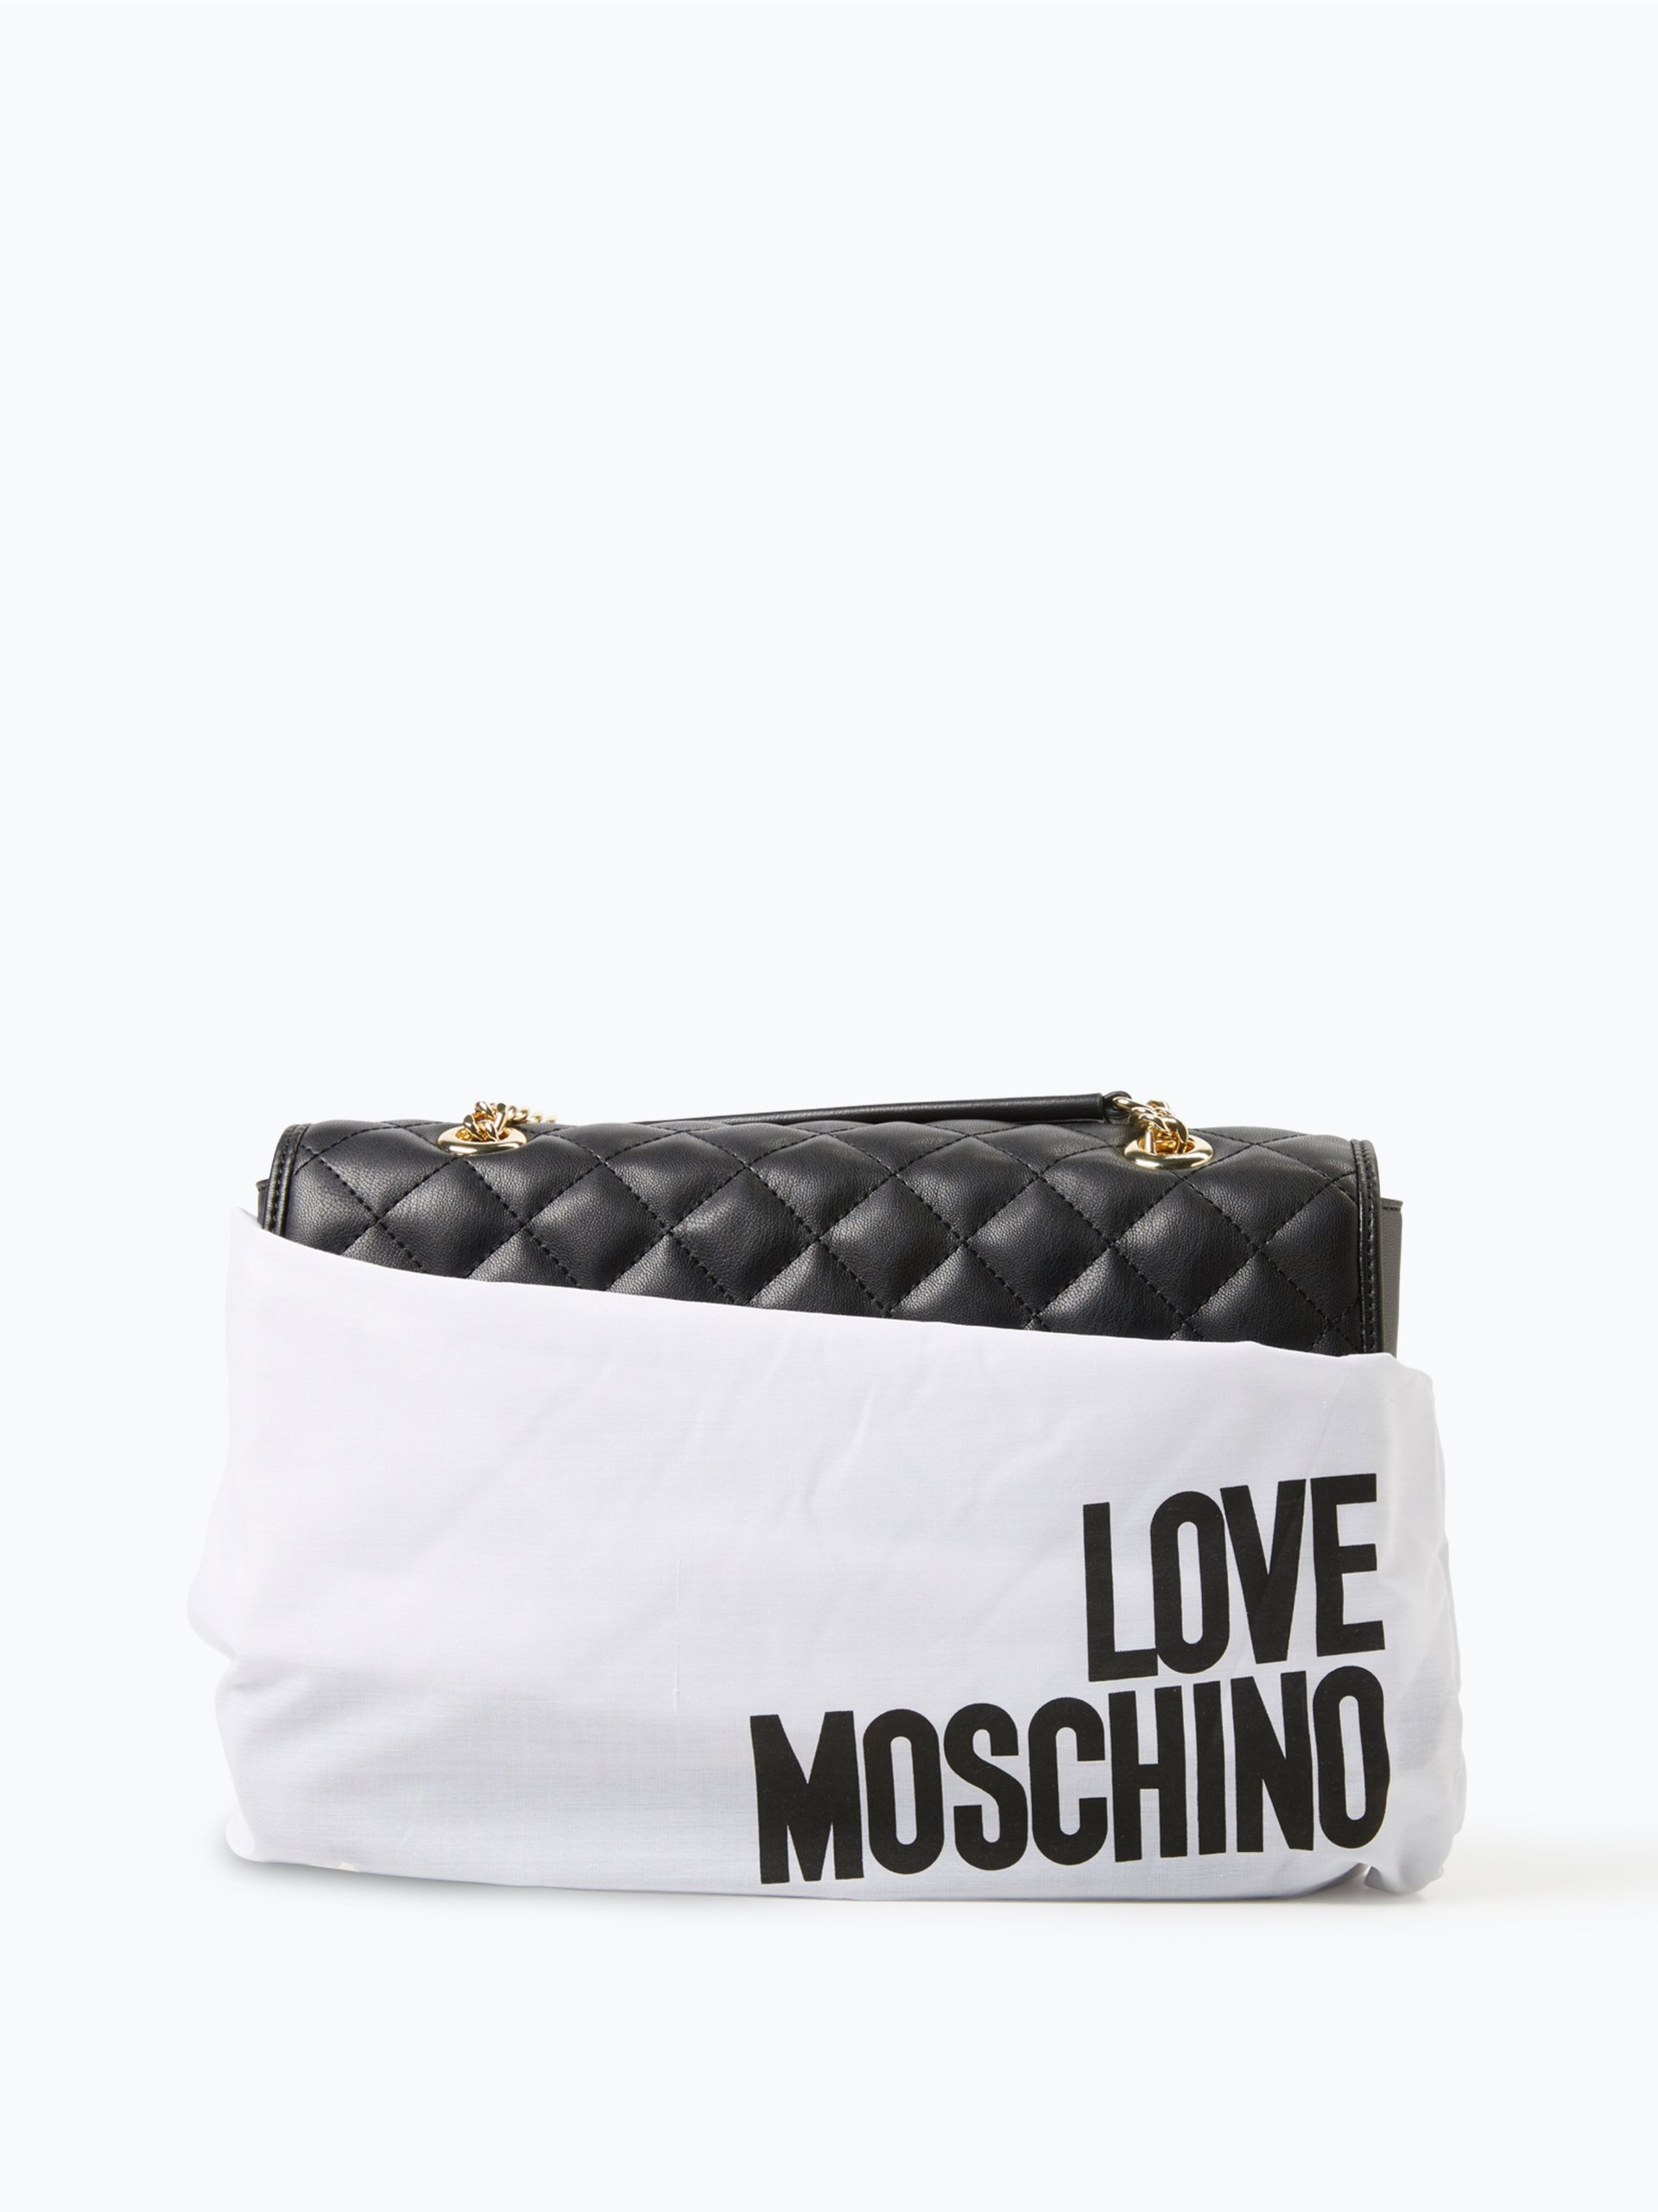 love moschino damen handtasche in leder optik 2 online kaufen peek und cloppenburg de. Black Bedroom Furniture Sets. Home Design Ideas